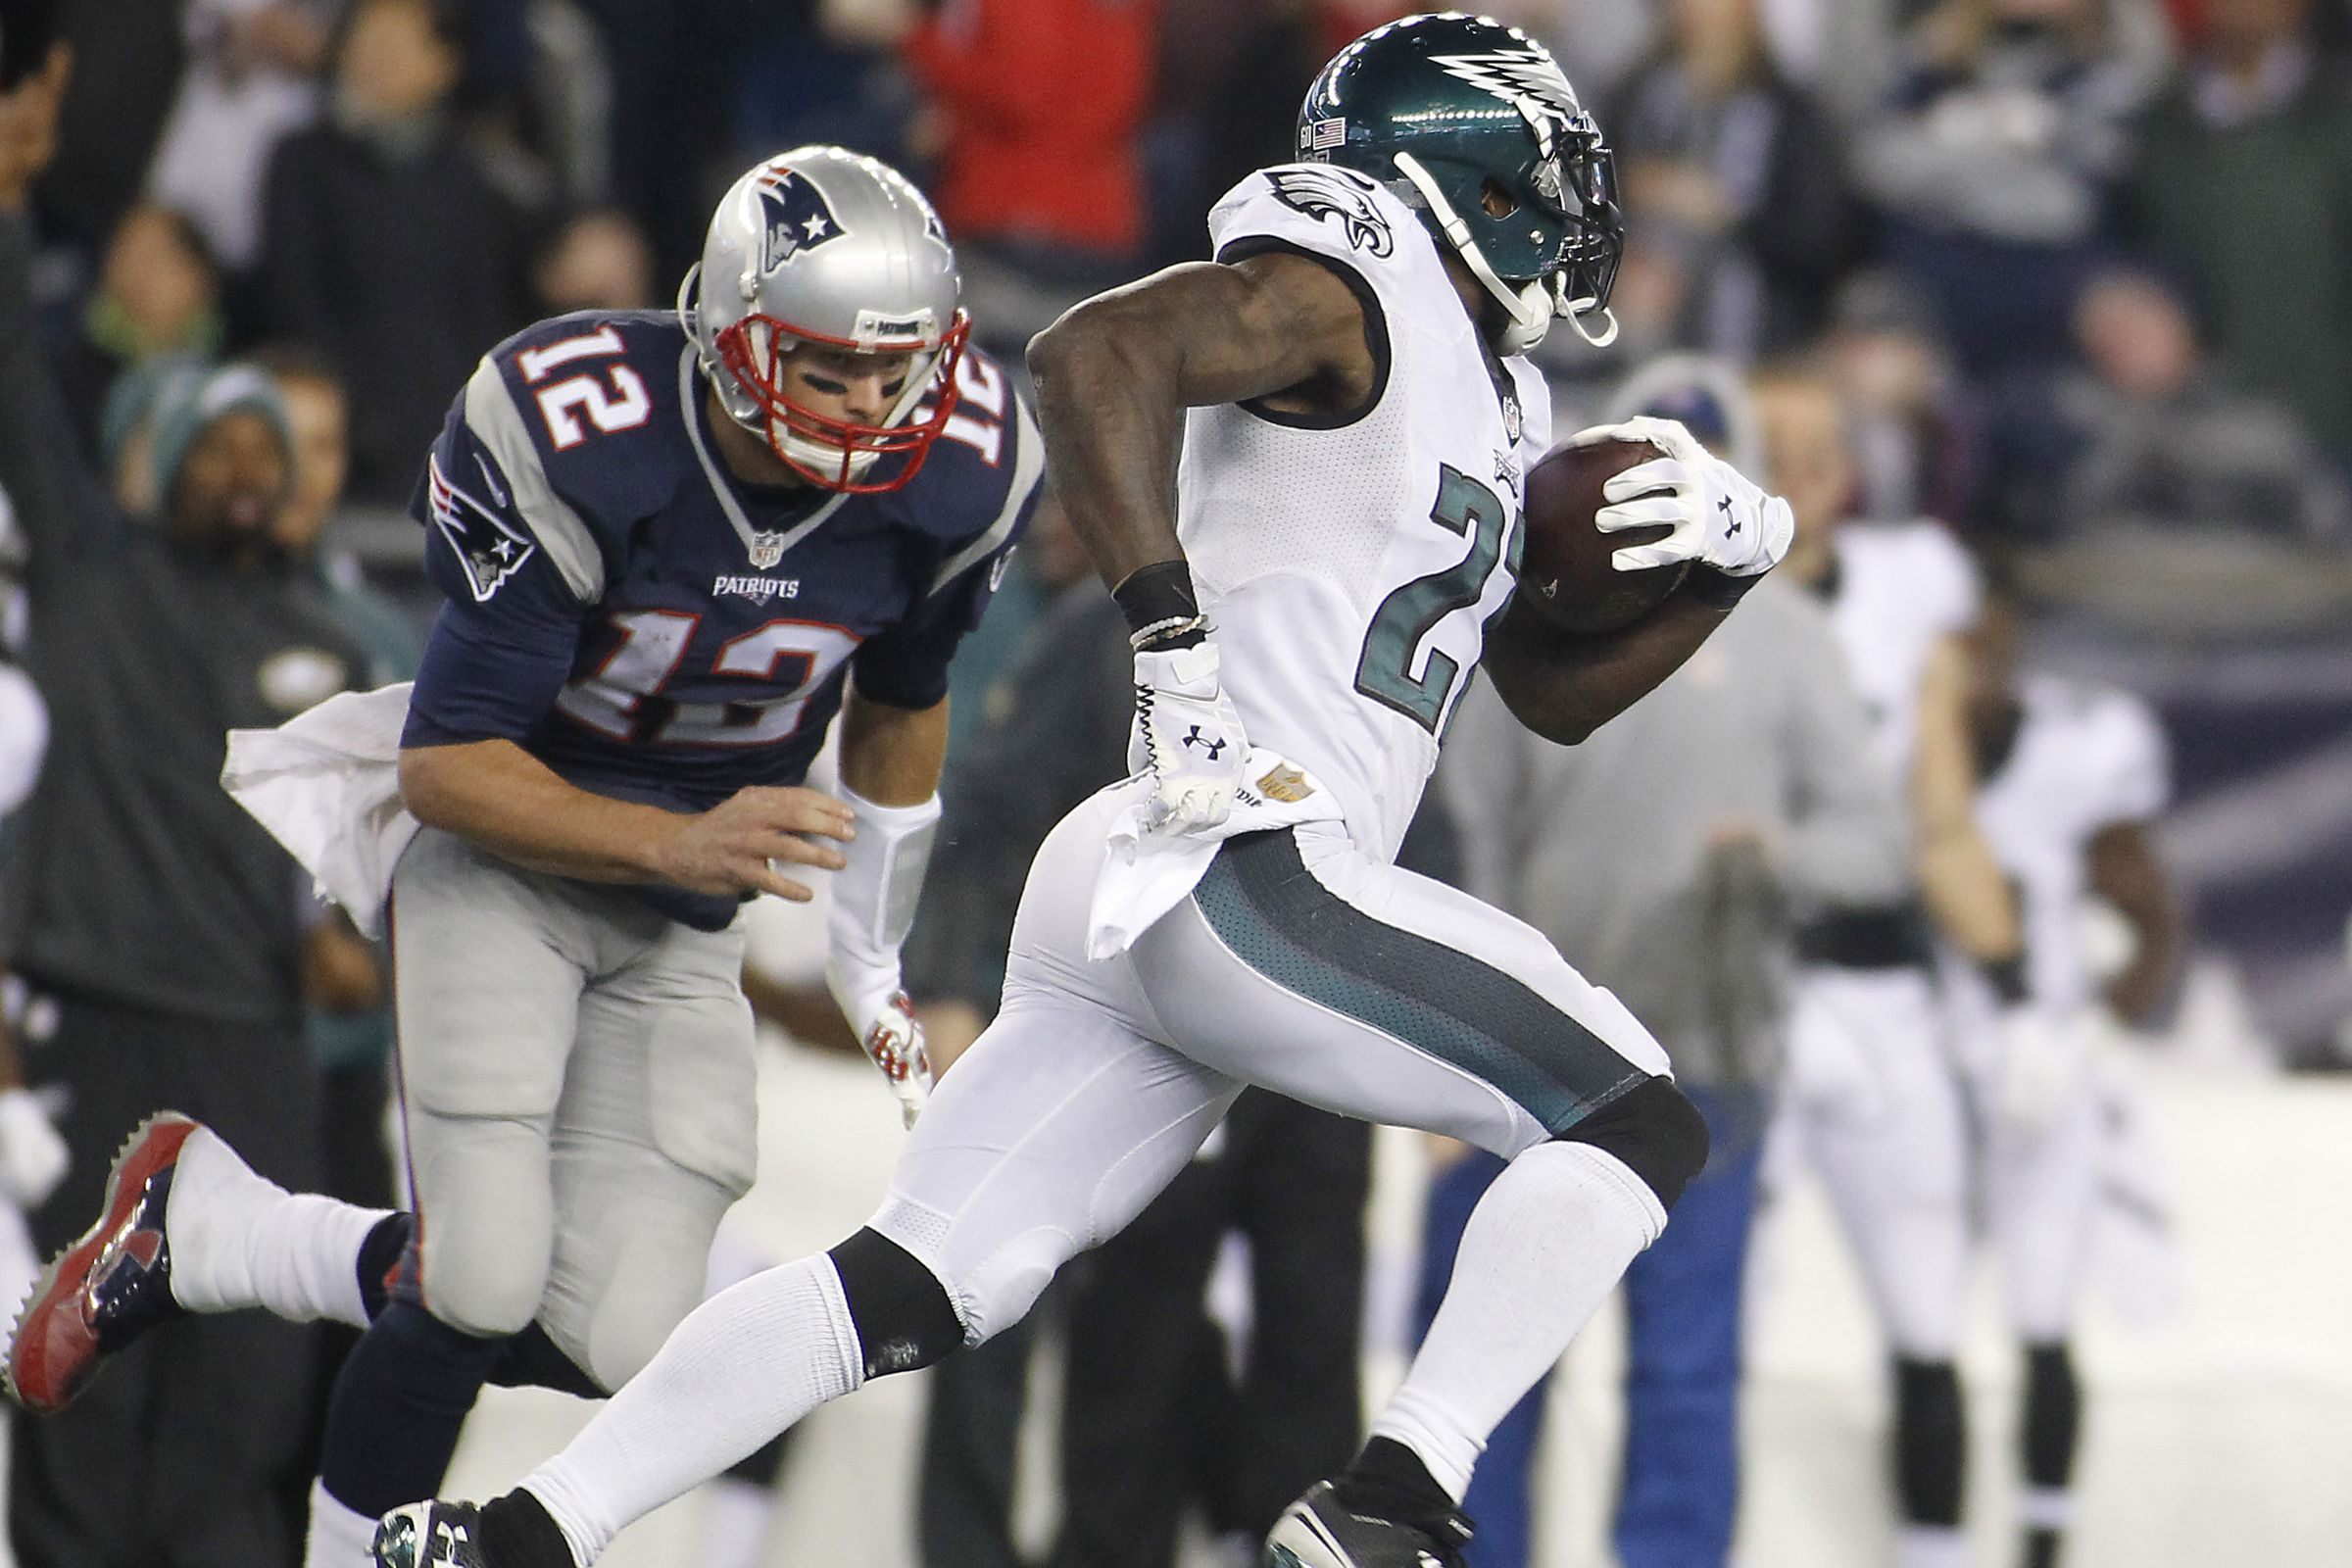 Eagles vs. Patriots - Winners and Losers: Big plays help ...